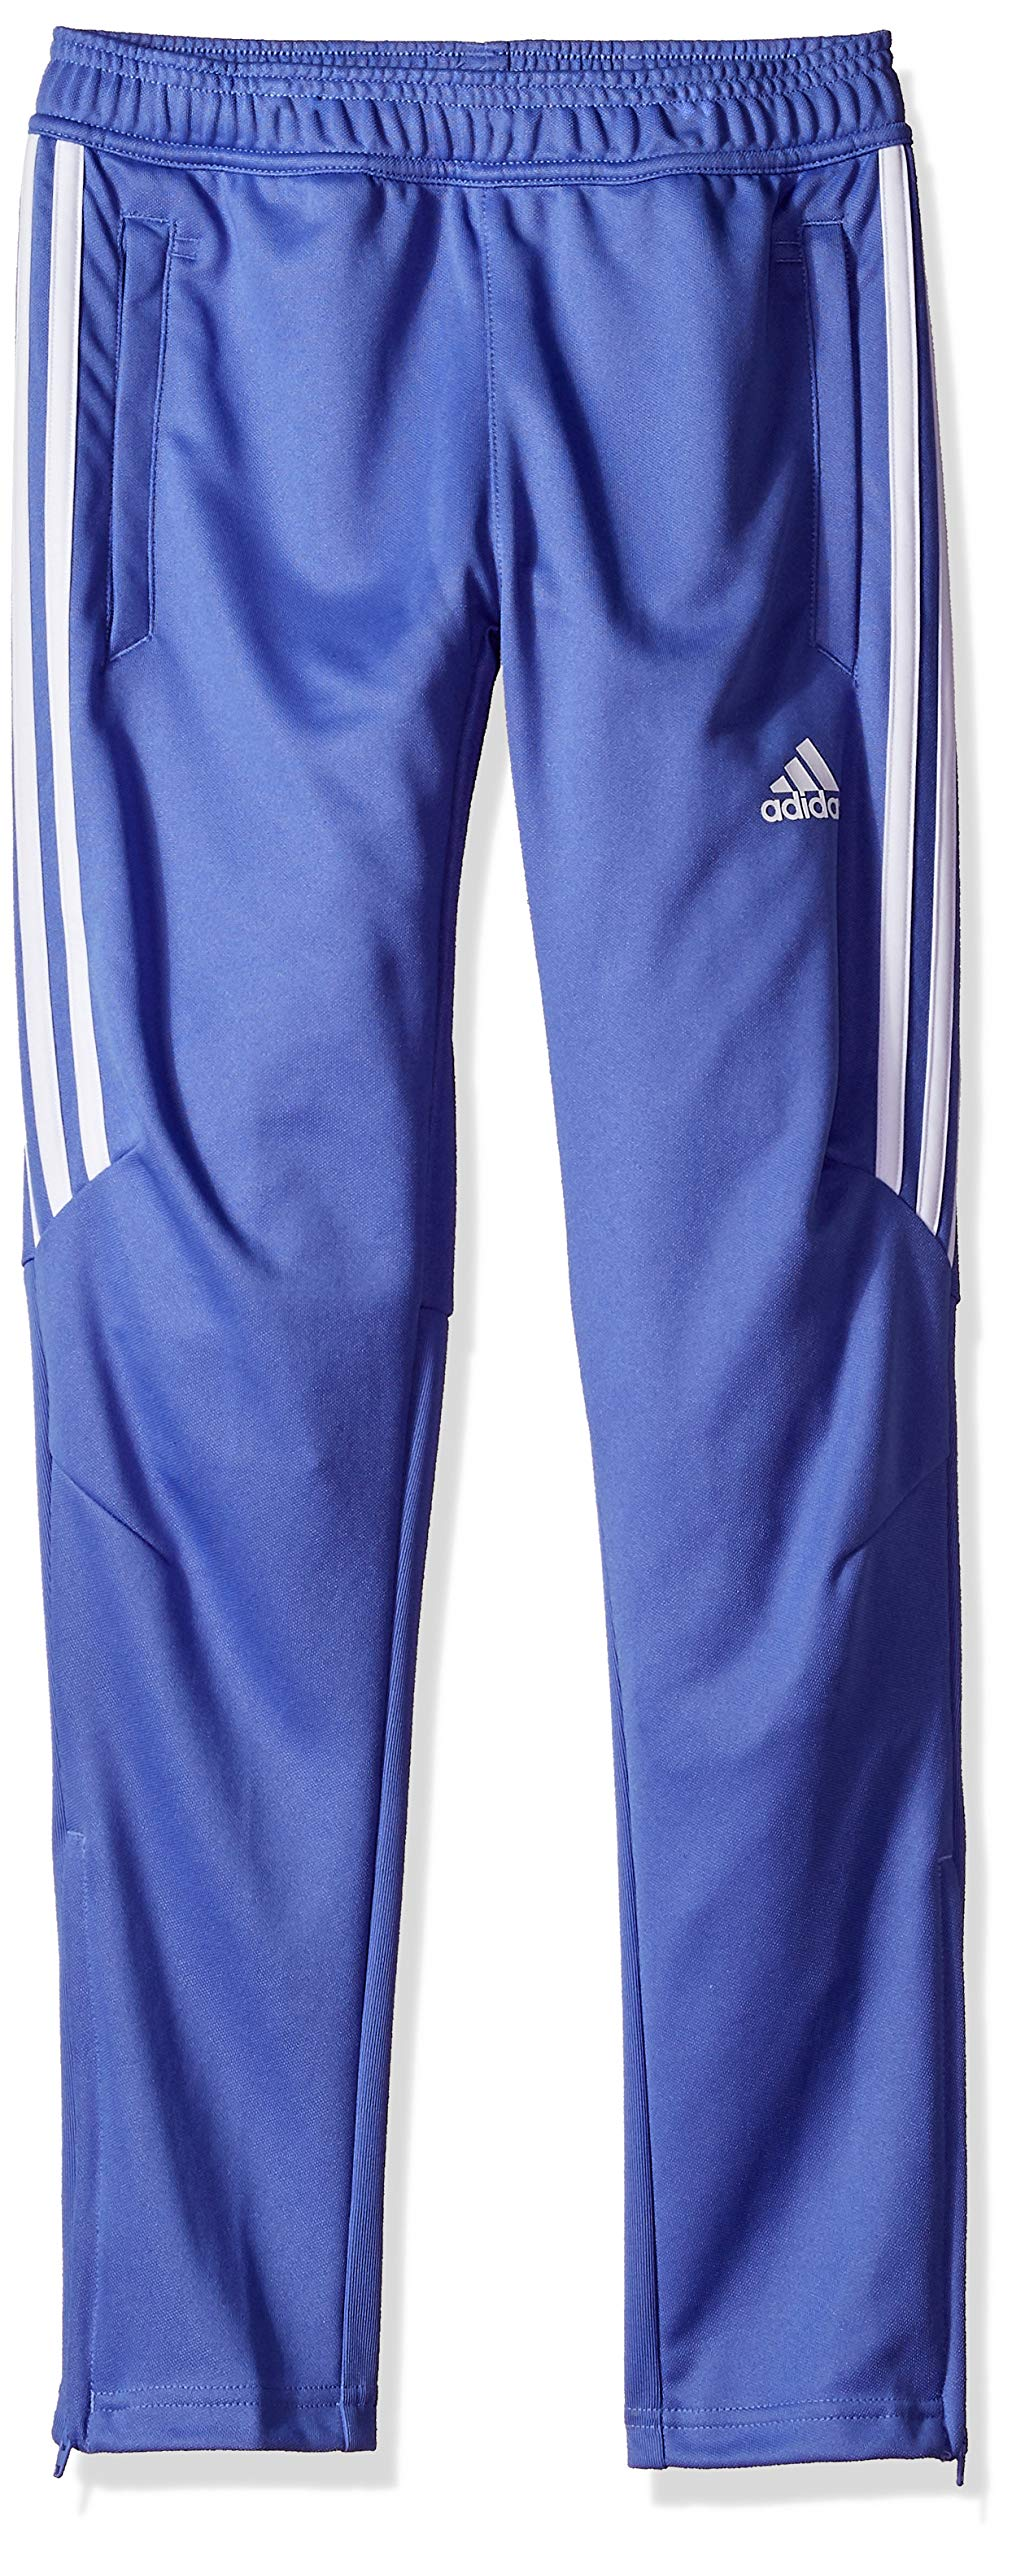 adidas Youth Soccer Tiro 17 Training Pant, Real Lilac/ White, Small